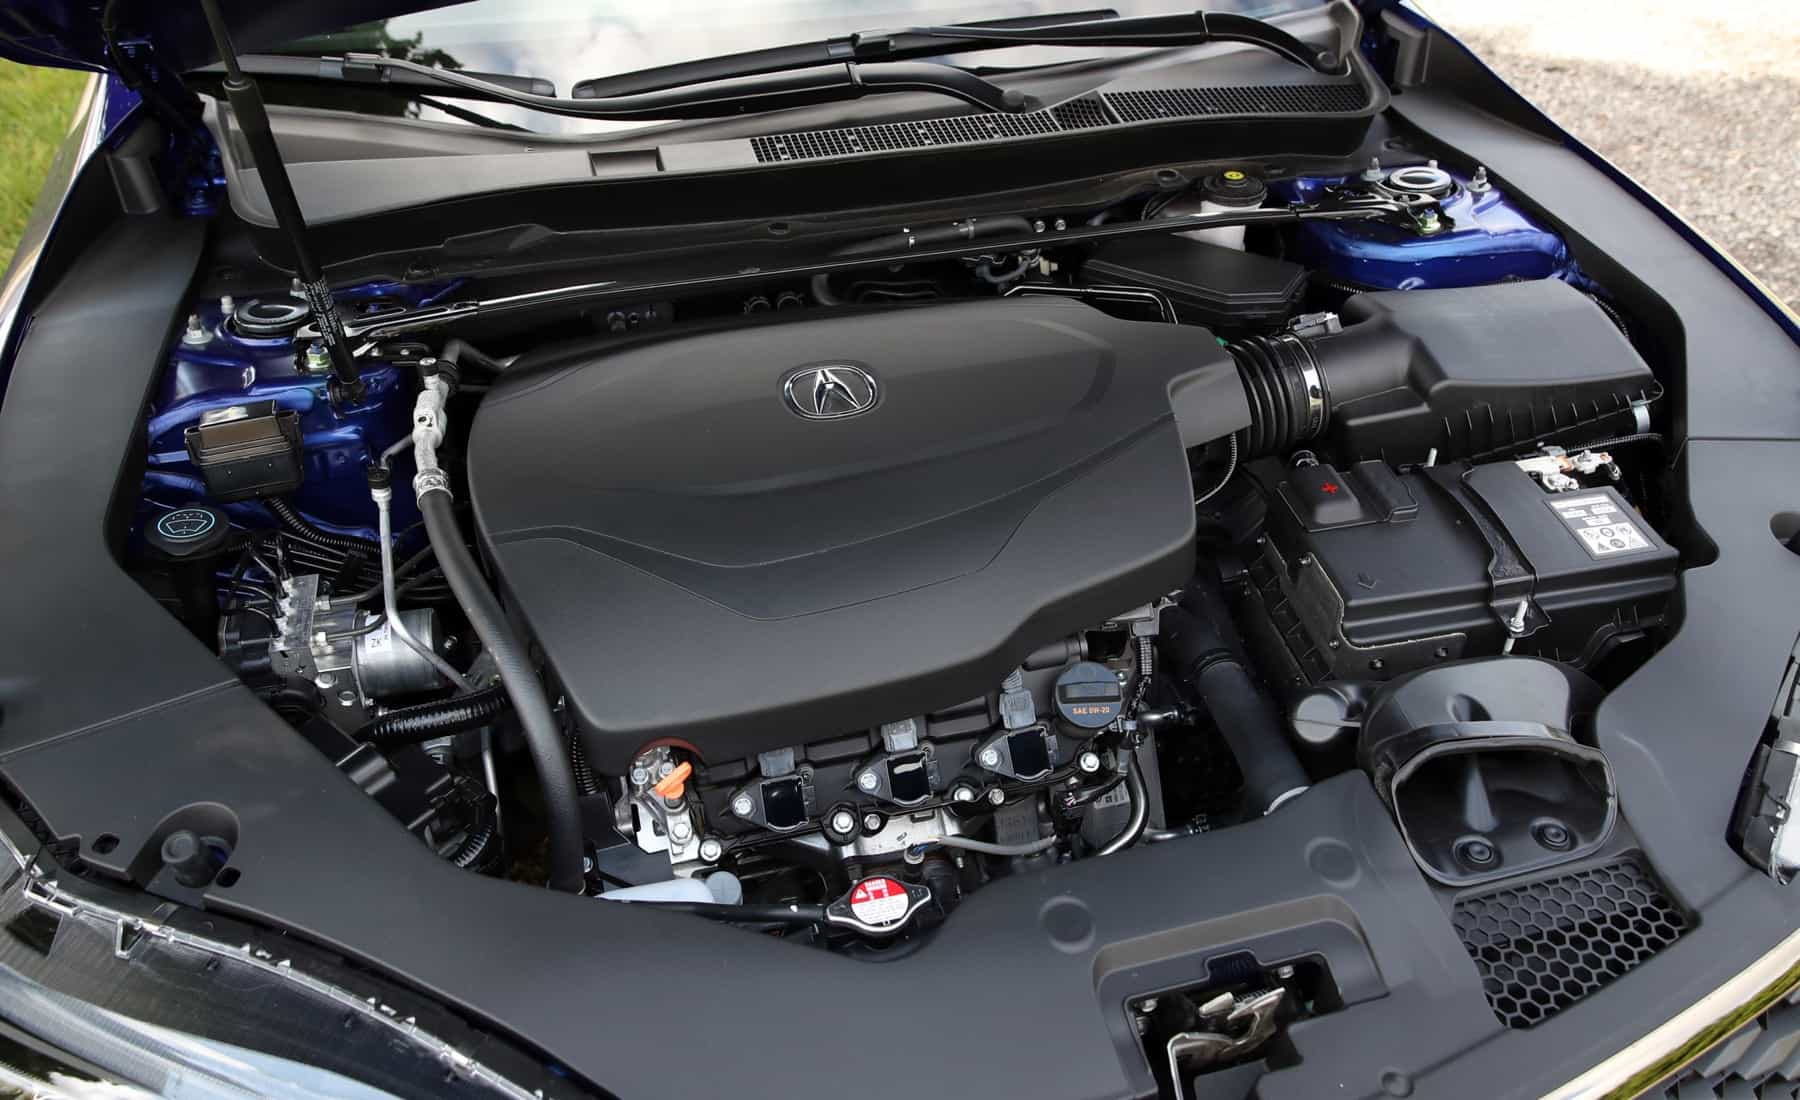 2018 Acura TLX View Engine (View 5 of 46)